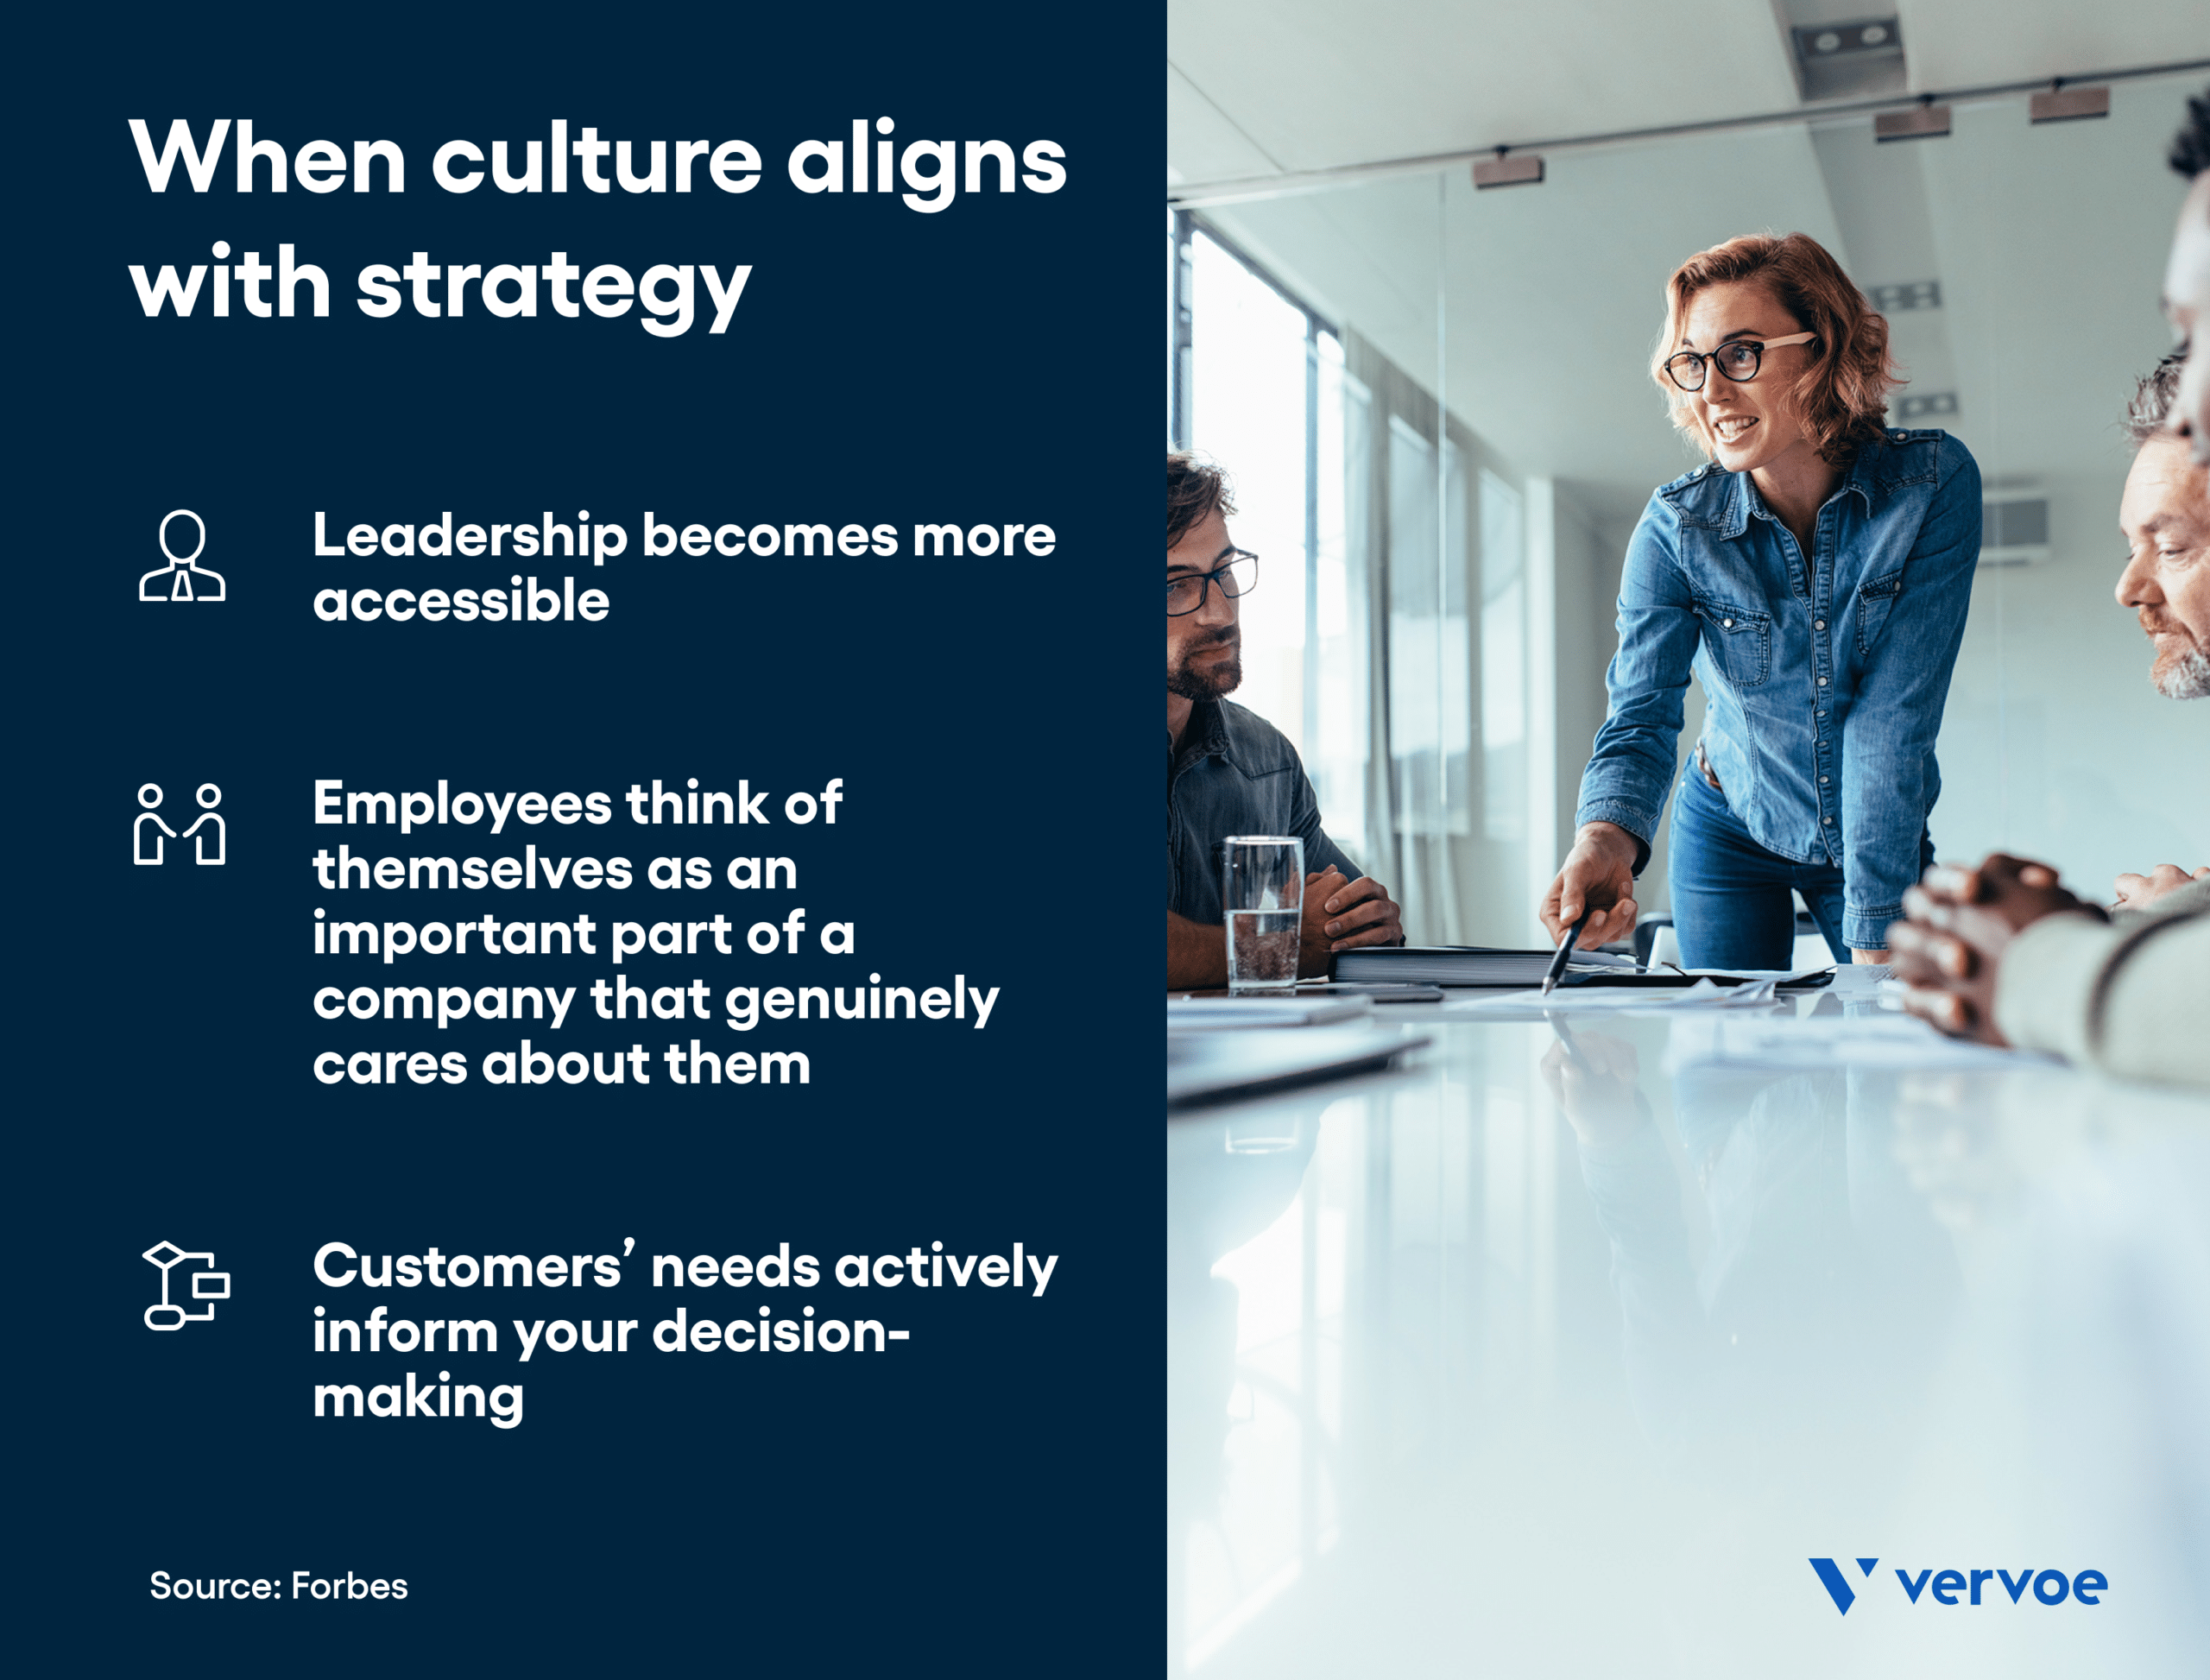 Infographic showing the benefits of culture aligning with strategy